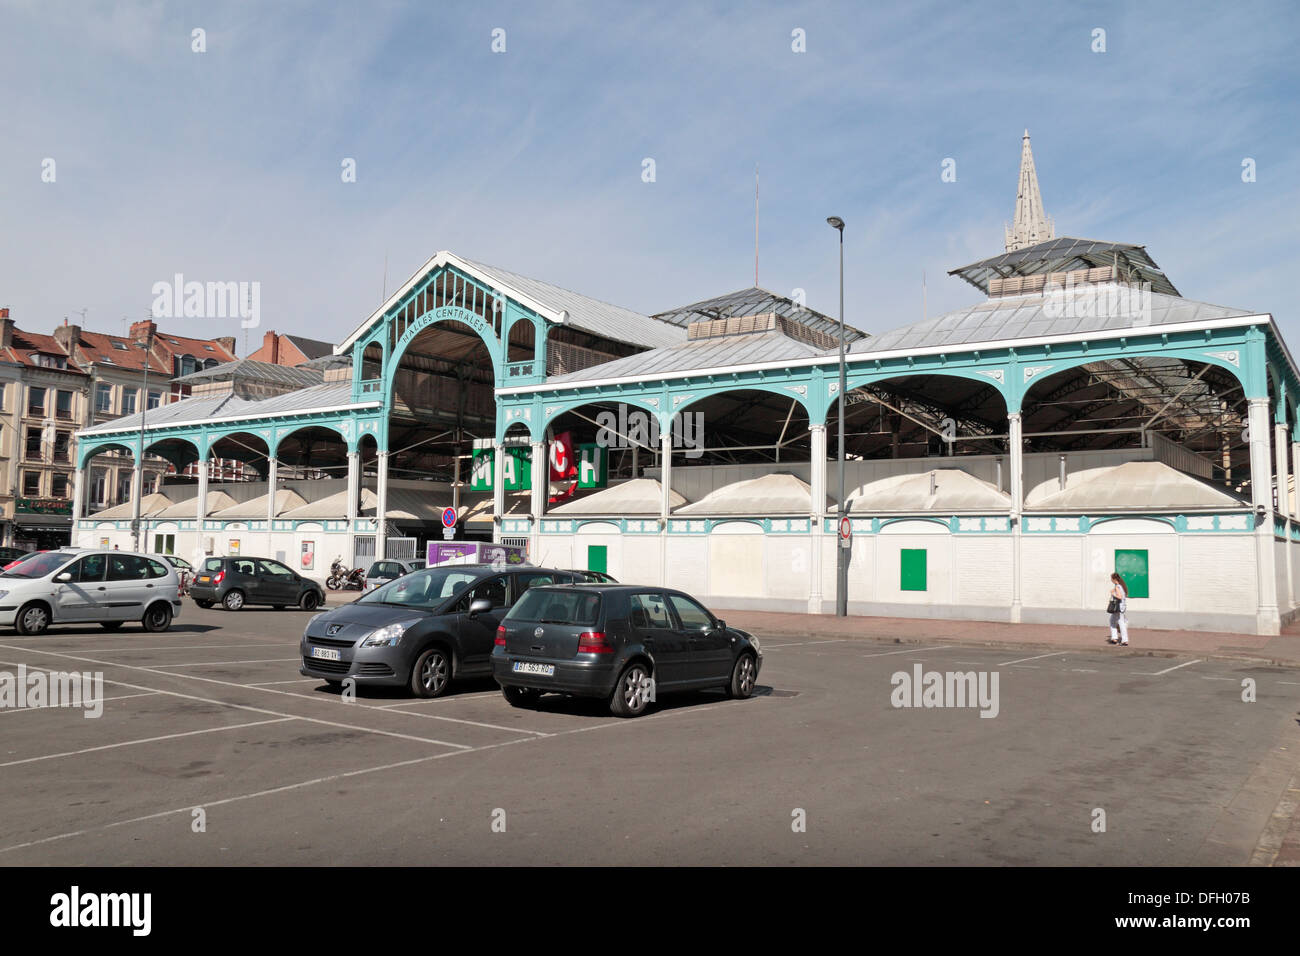 The Match Supermarket on rue Solférino housed in an old covered ...